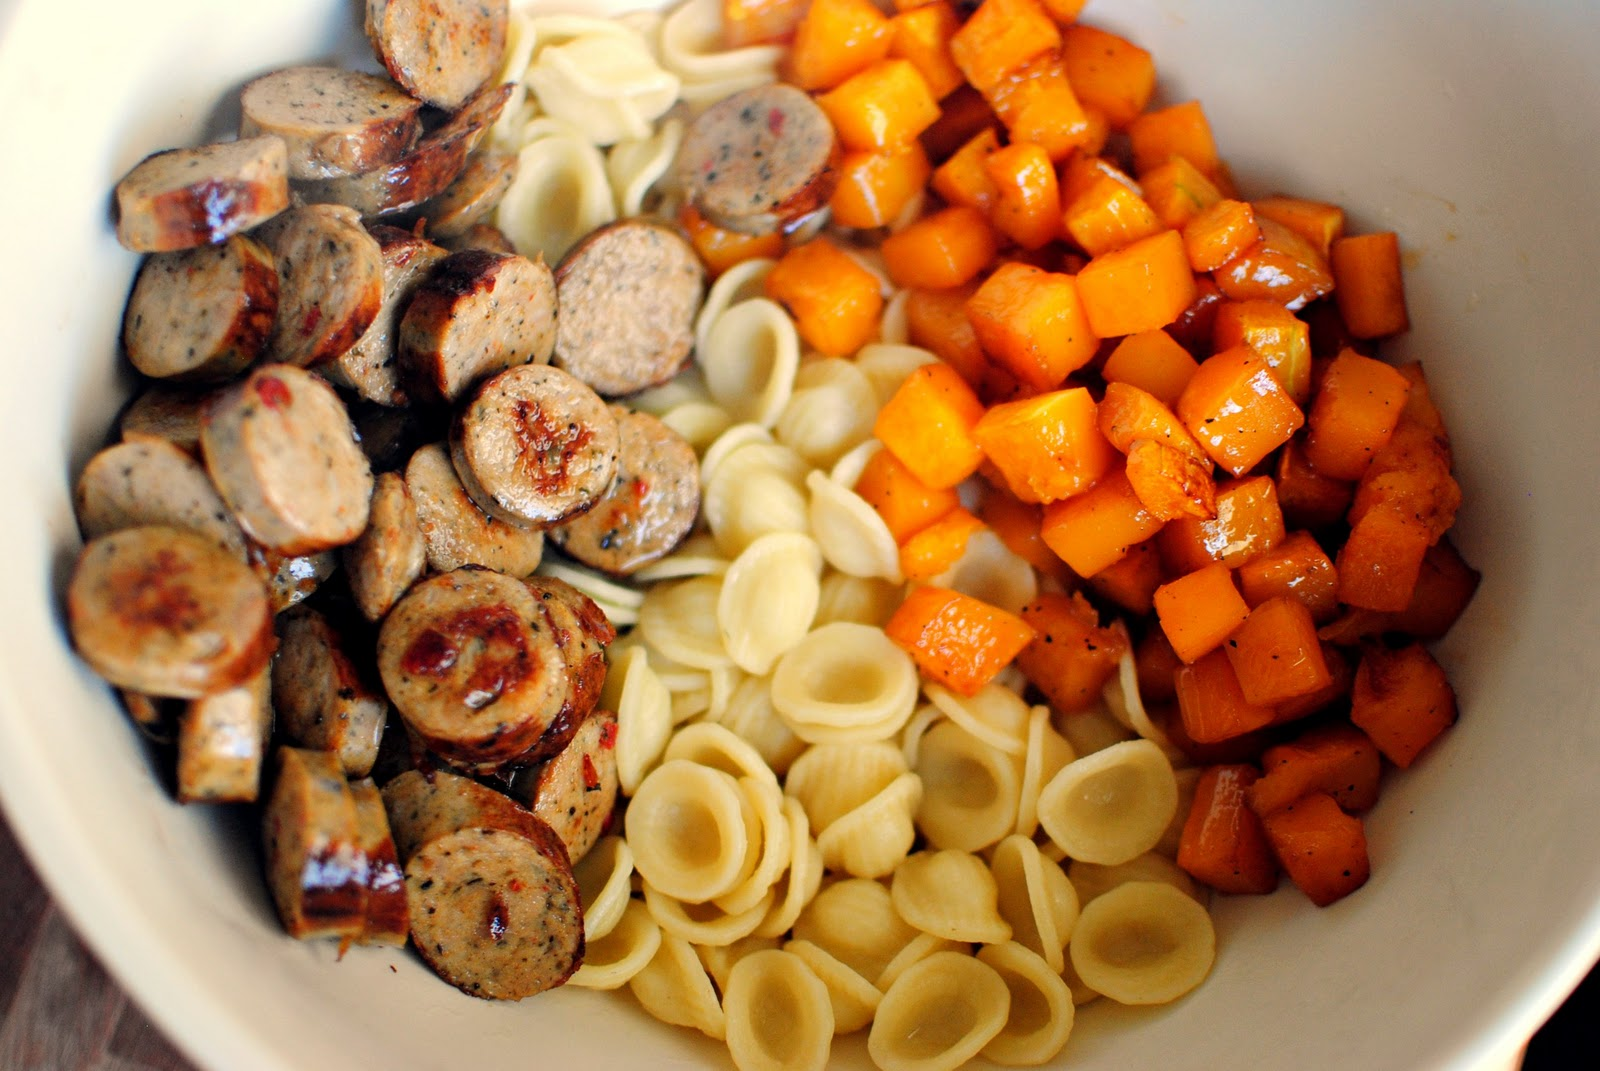 ... ; add the cooked pasta, chicken sausage and roasted butternut squash